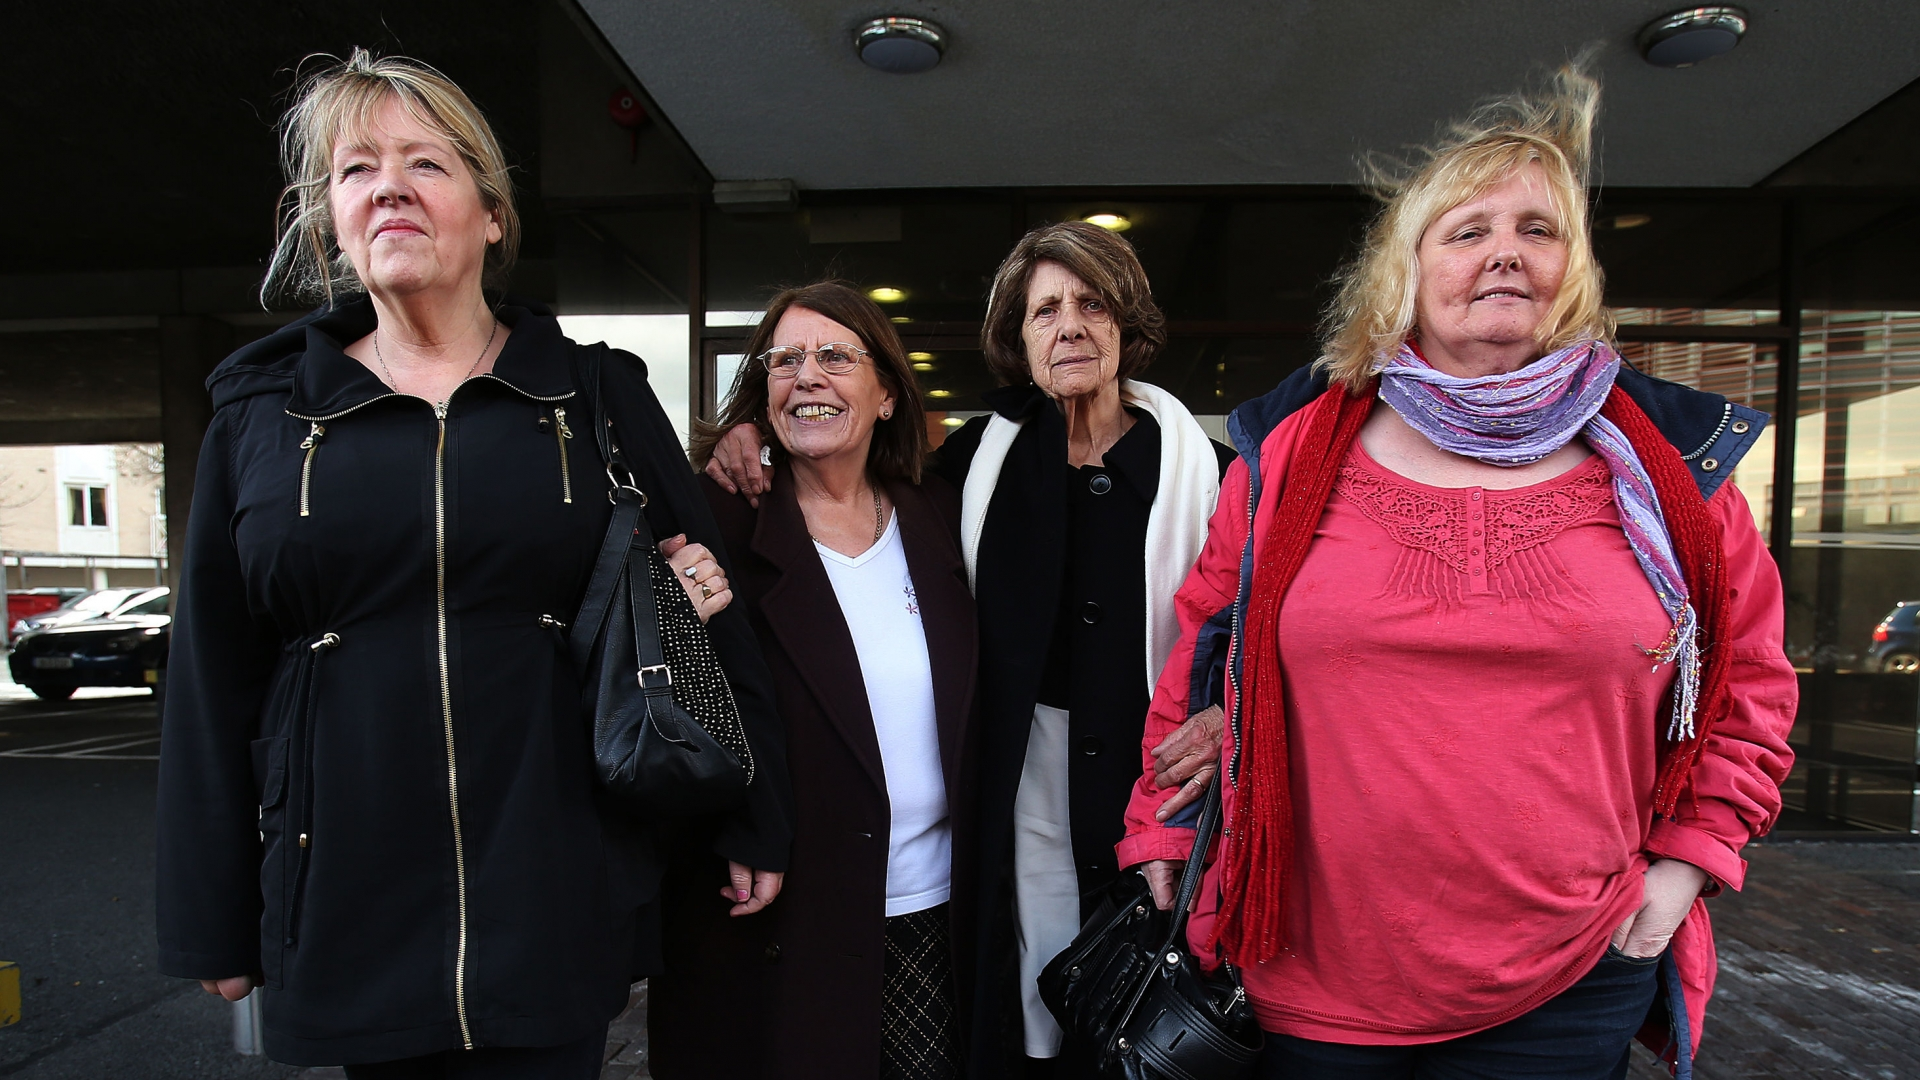 Survivors (left to right) Maureen Sullivan, Mary McManus, Kitty Jennette and Mary Smith, at the Law Reform Commission offices in Dublin to discuss proposed compensation packages, for those who survived Catholic-run workhouses known as Magdalene laundries. (Credit: Julien Behal/PA Images/Getty Images)